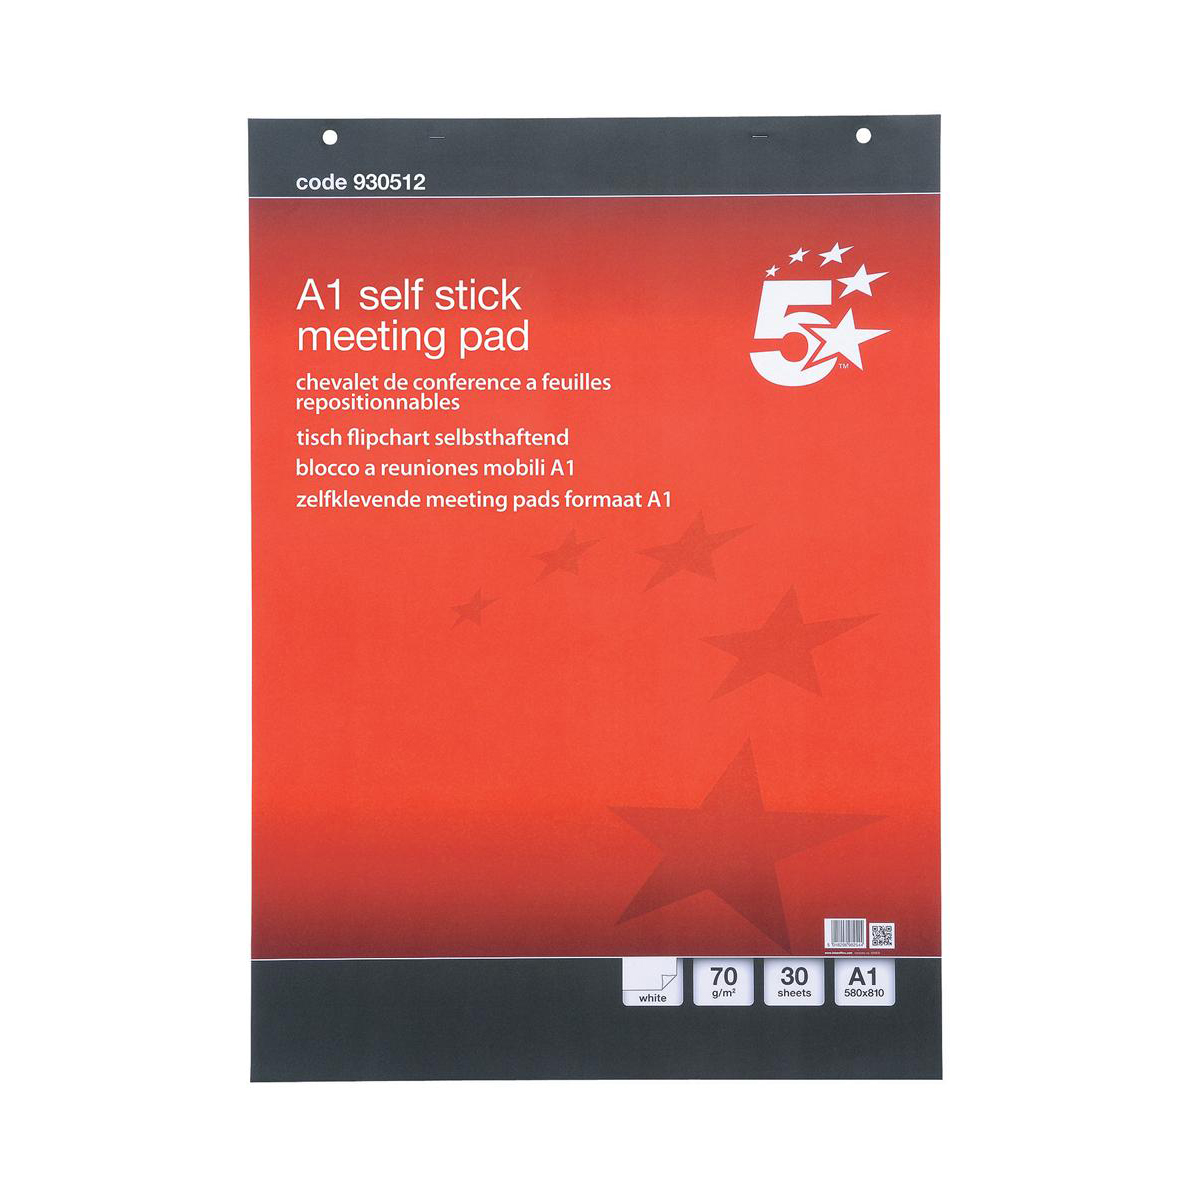 5 Star Flipchart Pad Self-adhesive 70gsm 30 Sheets A1 White Code FL1240007